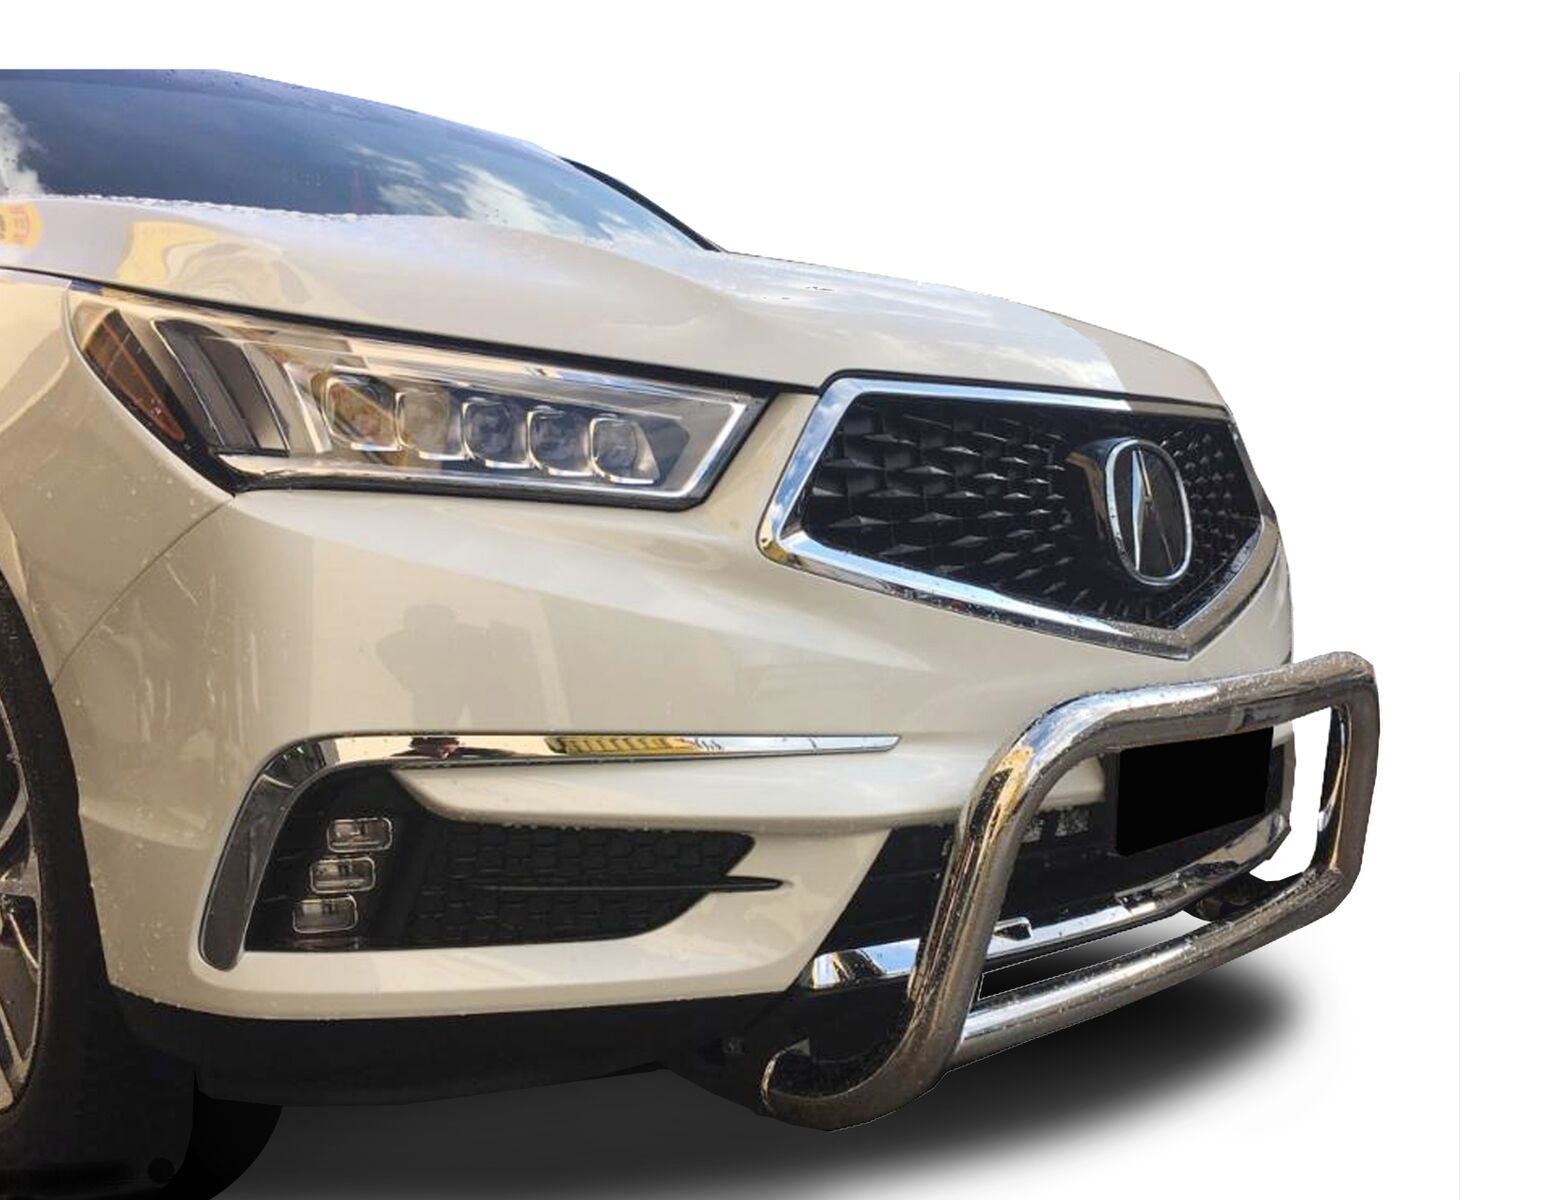 Broadfeet DCAC-115-32 2017-2019 Acura MDX Sport Stainless Steel A-Bar & Nudge Bar